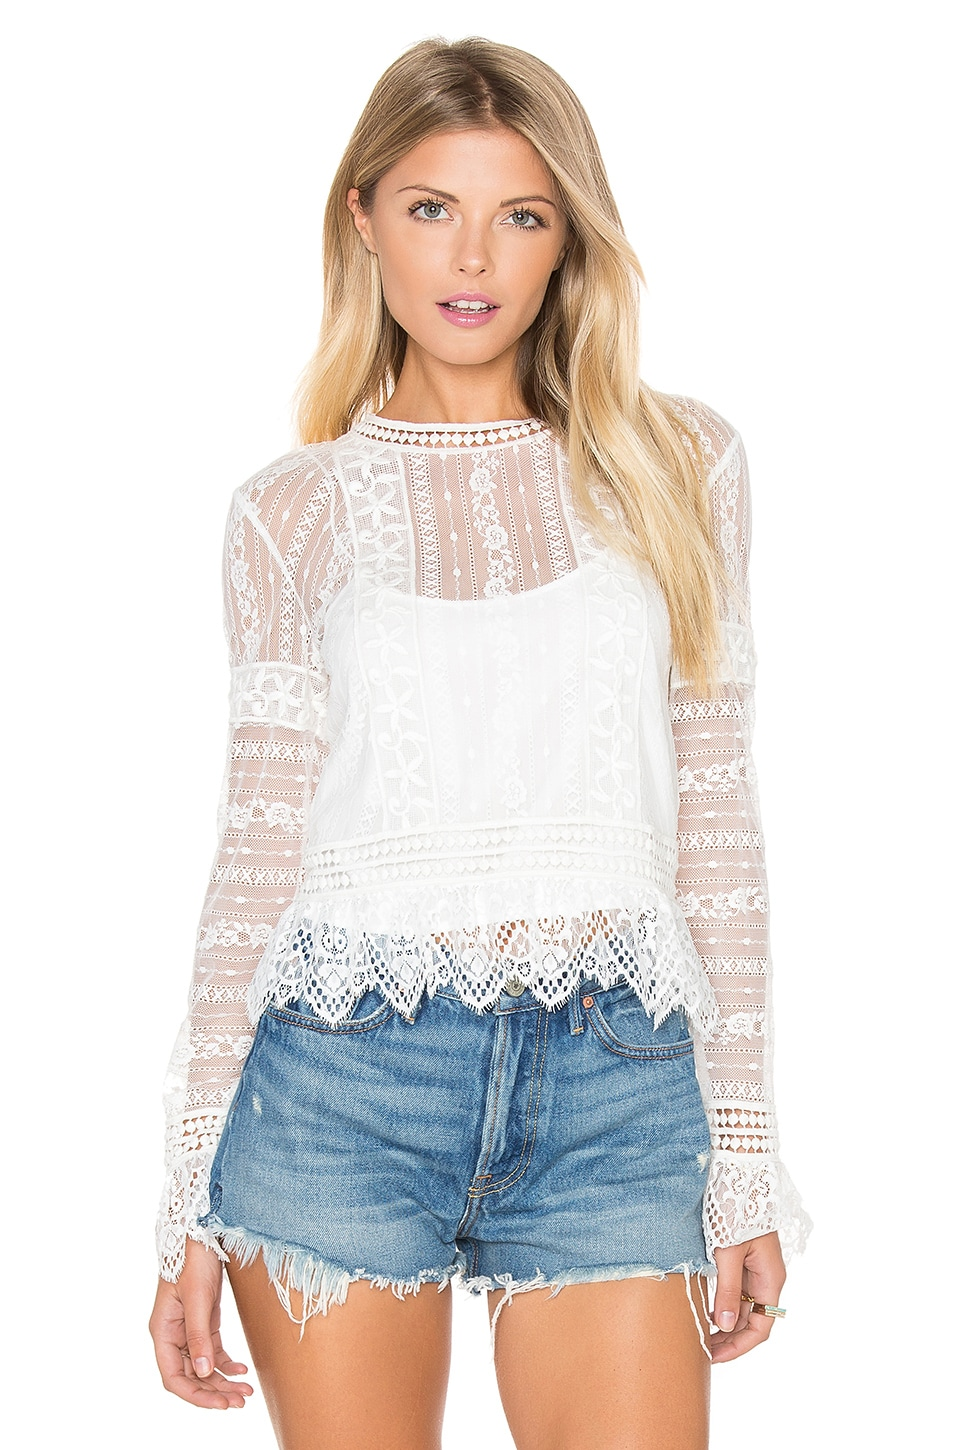 SAYLOR Gwenyth Top in Ivory